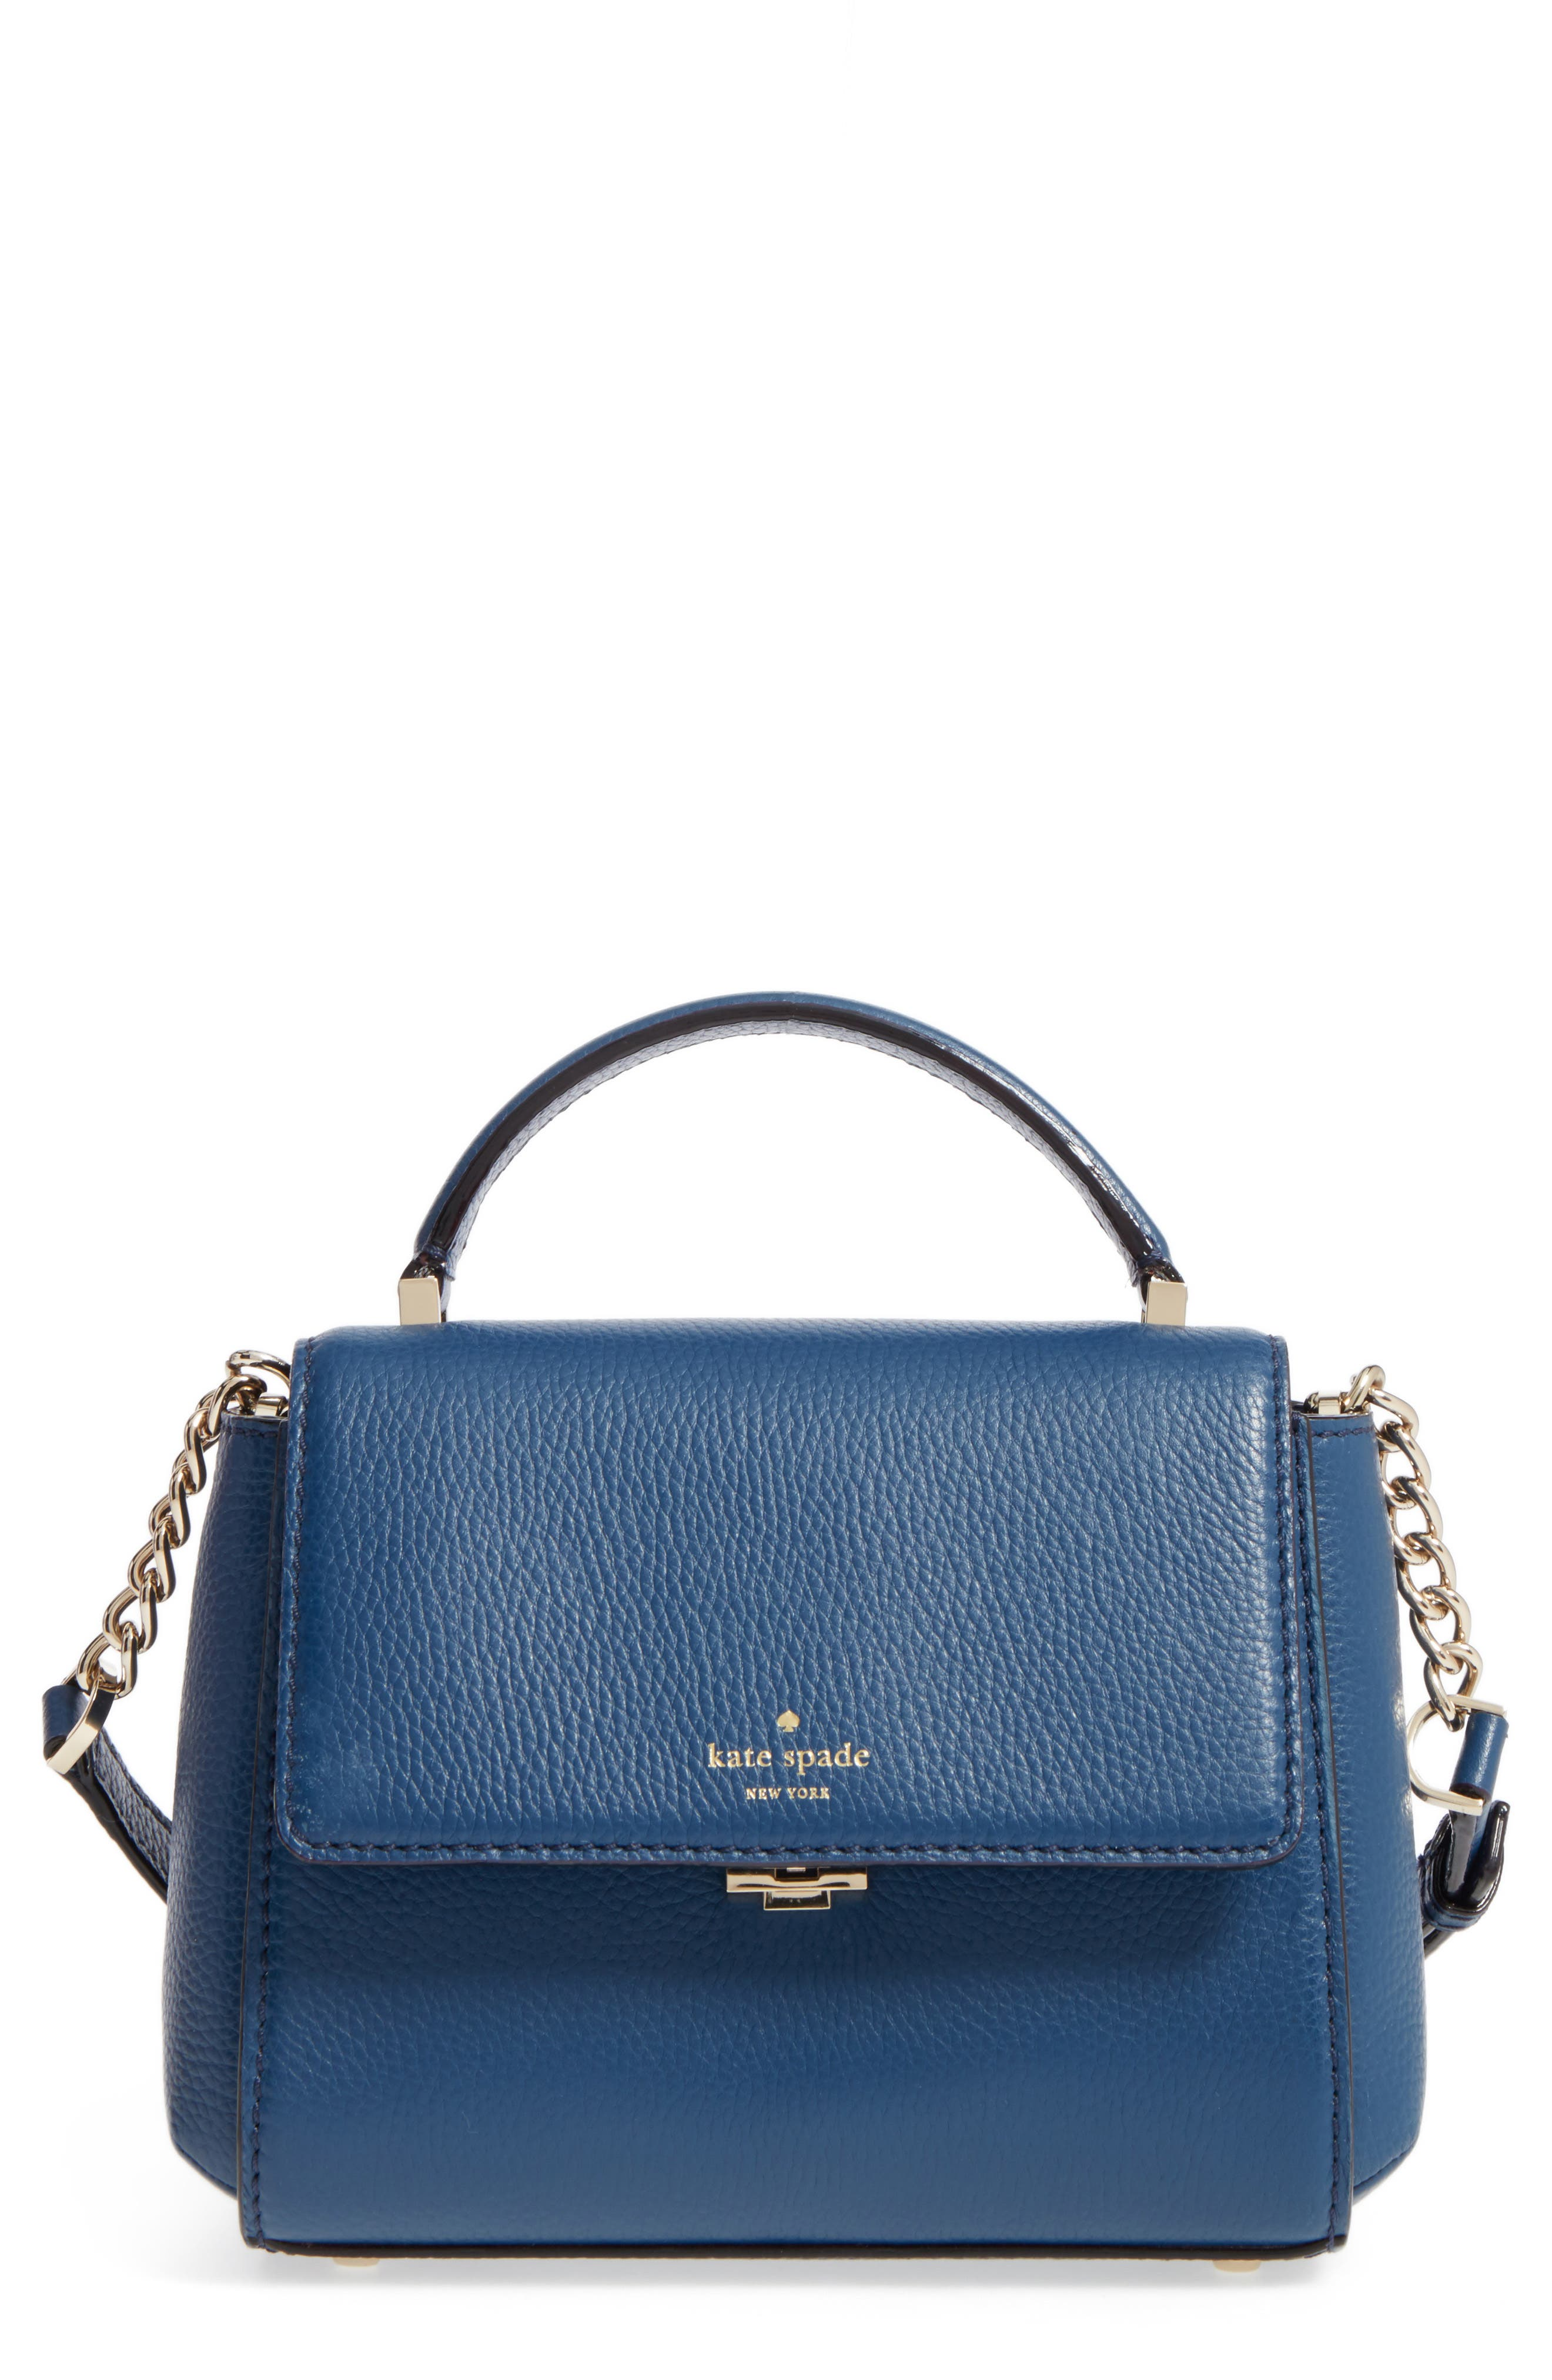 kate spade new york young lane - shirley leather satchel